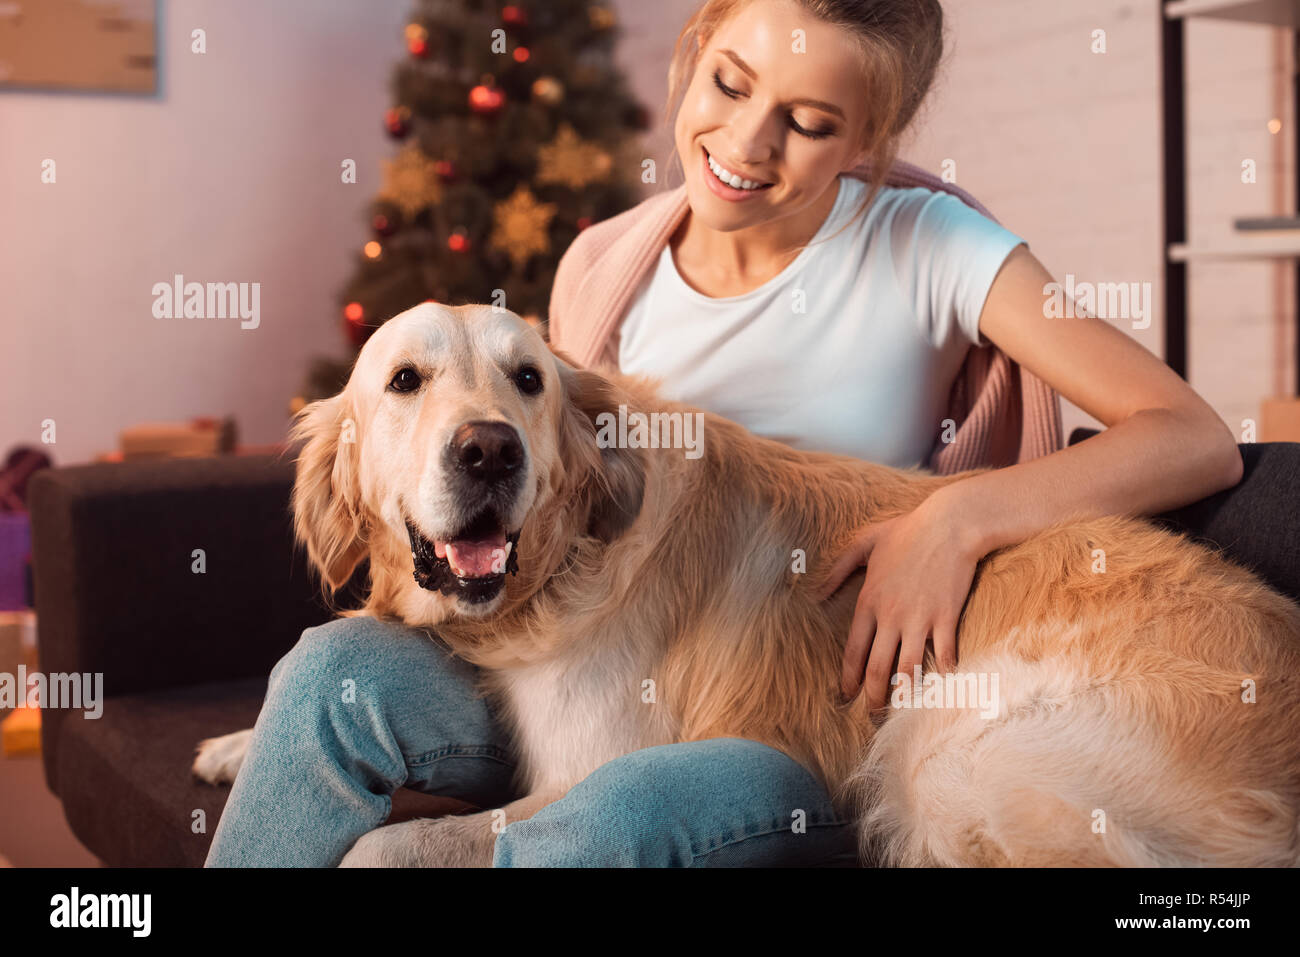 Beautiful Smiling Young Blonde Woman Sitting On Couch And Hugging